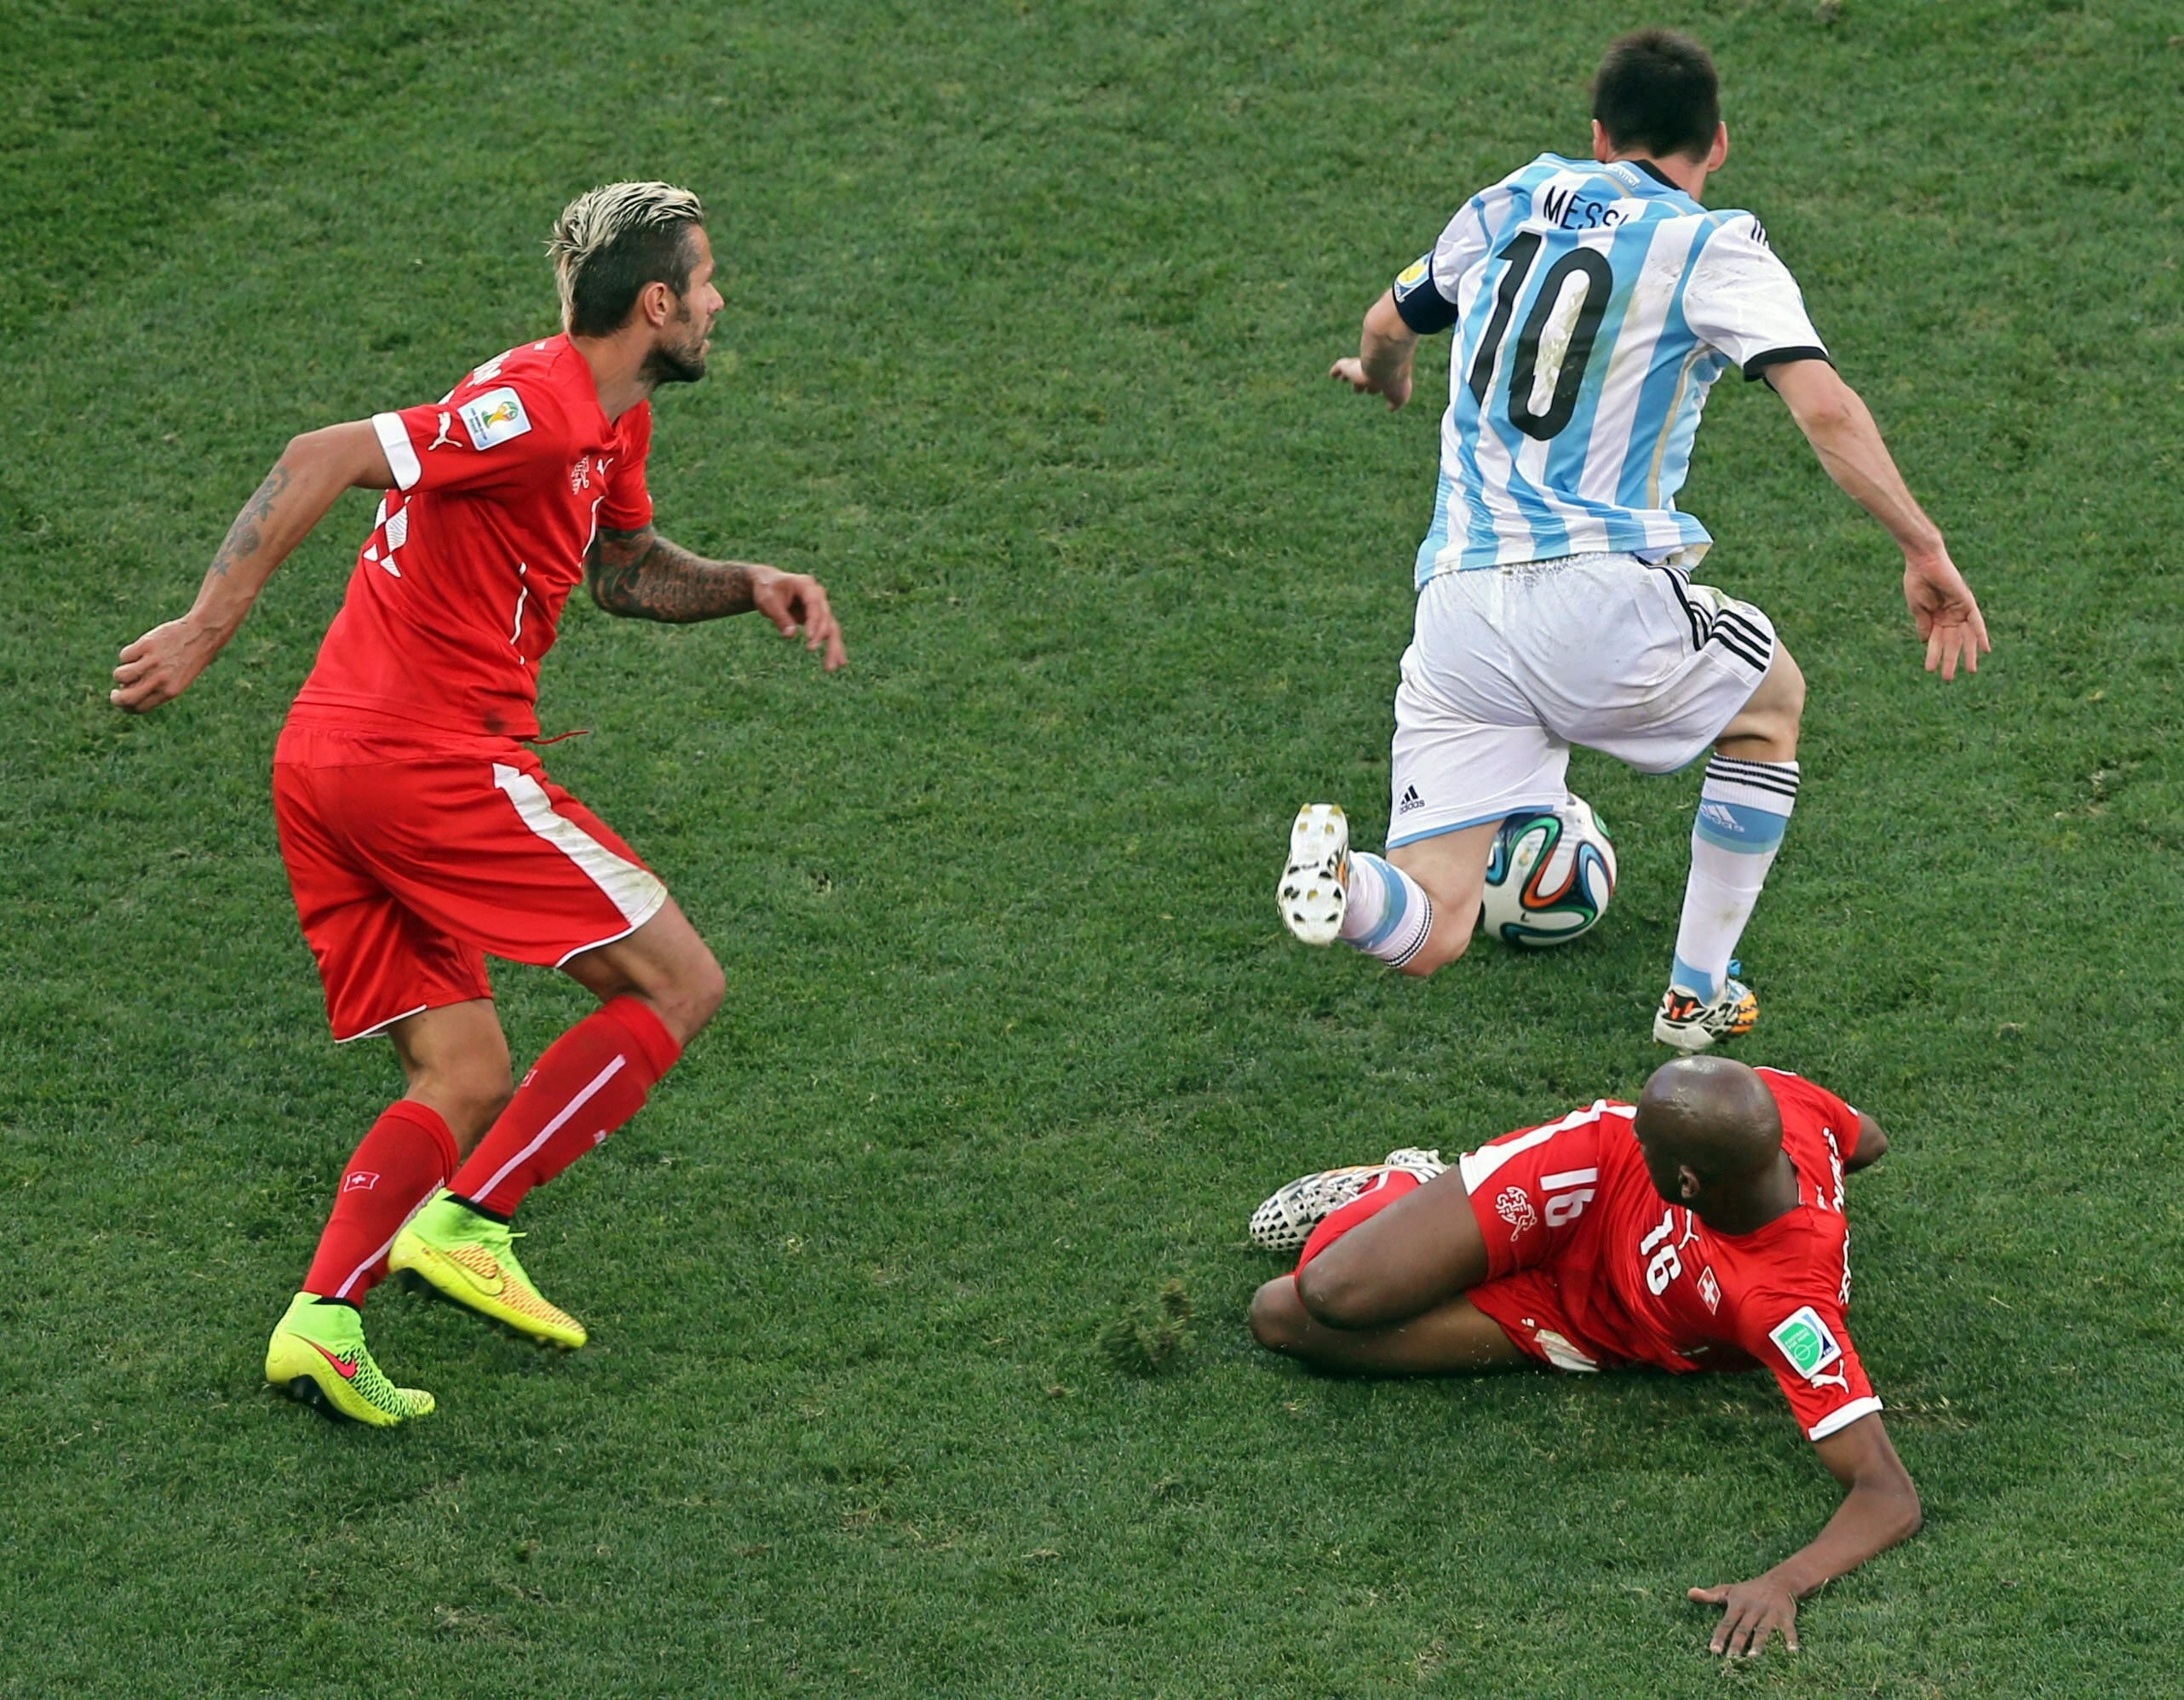 Argentina's Lionel Messi escapes from Switzerland's Valon Behrami (L) and Gelson Fernandes (R) during the FIFA World Cup 2014 round of 16 match between Argentina and Switzerland at the Arena Corinthians in Sao Paulo, Brazil, on July 1, 2014.